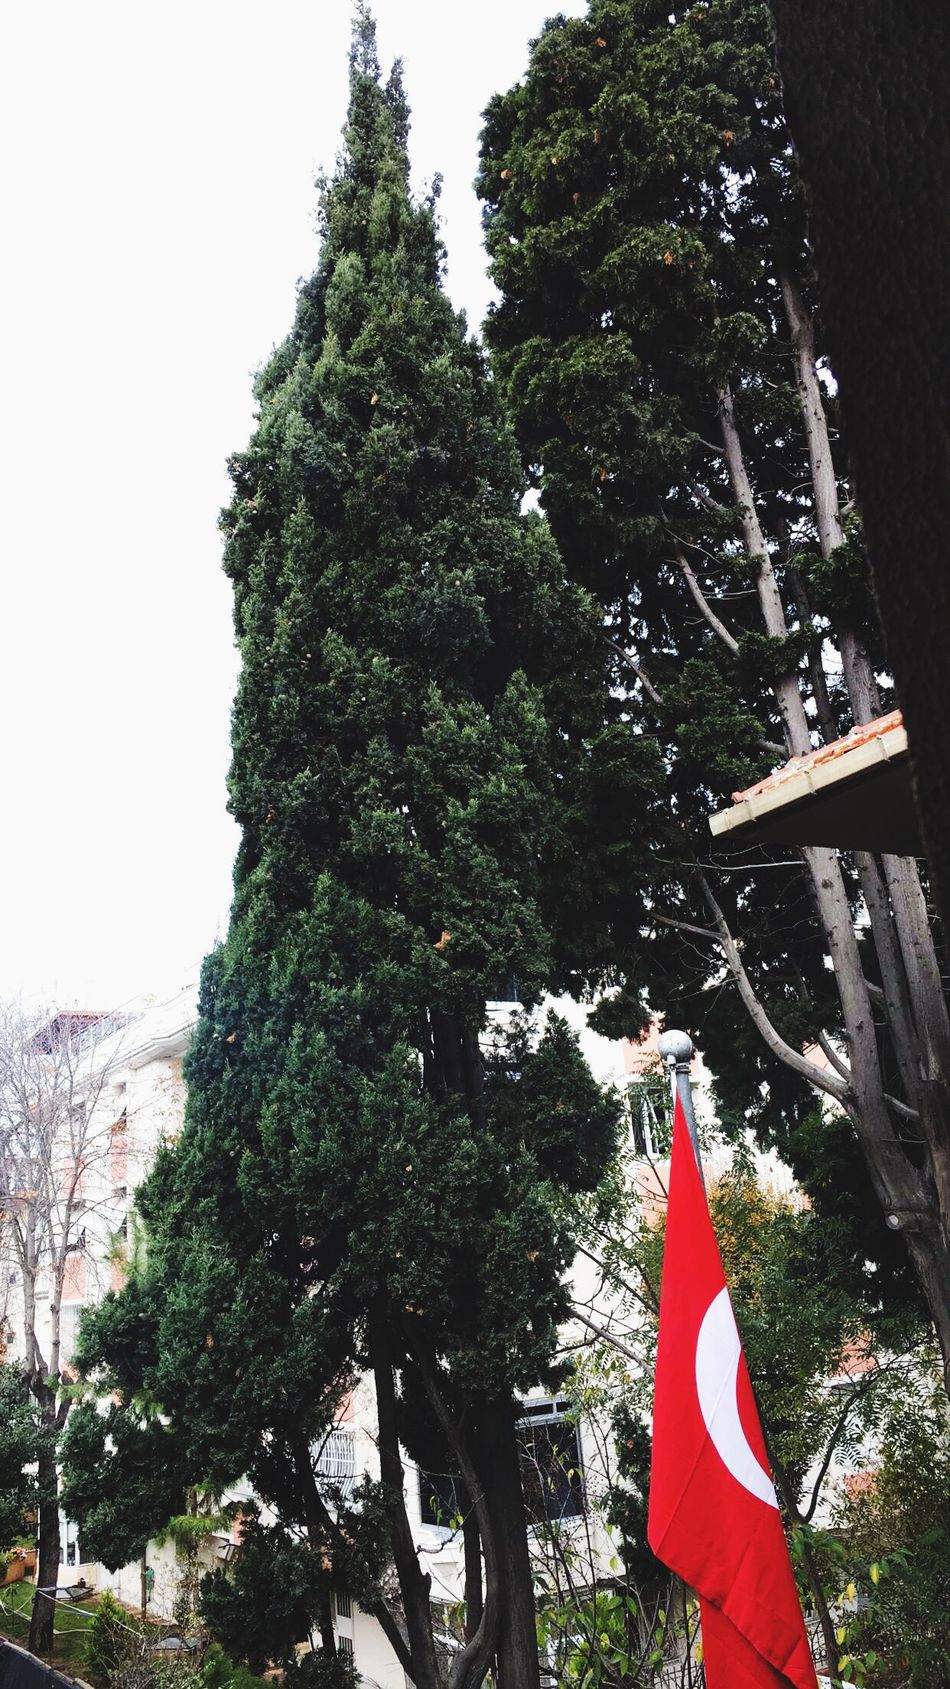 Tree Low Angle View Flag Patriotism Outdoors Growth Sky Day Nature No People